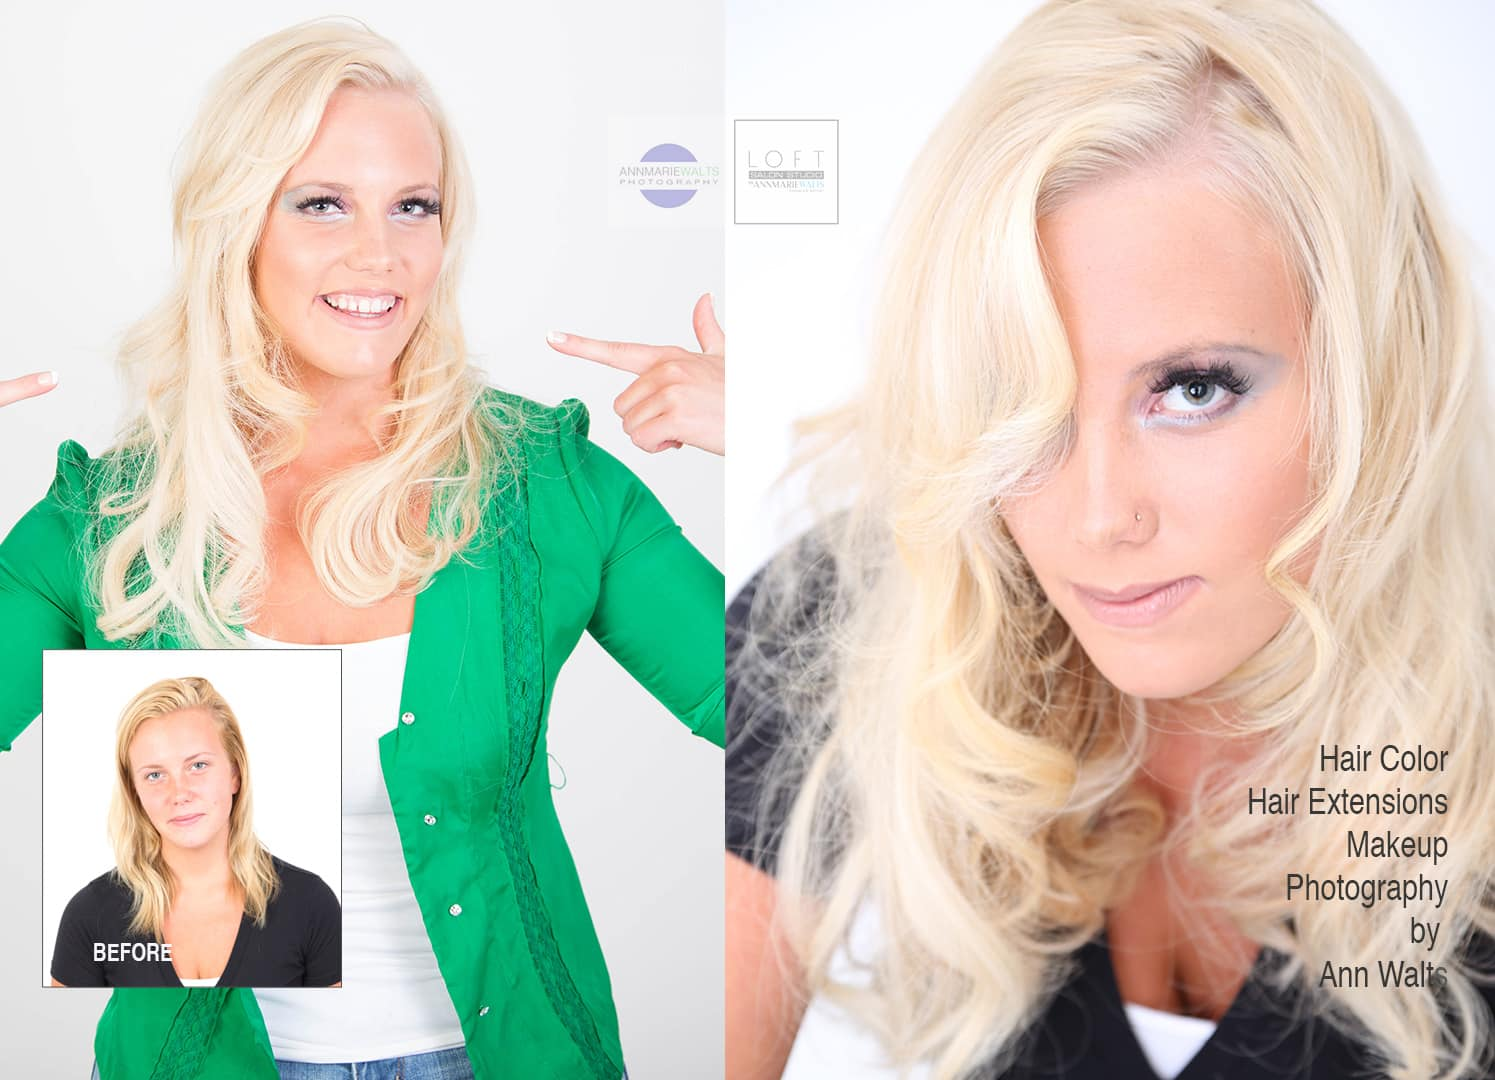 Best Salon For Hair Extensions Headshots